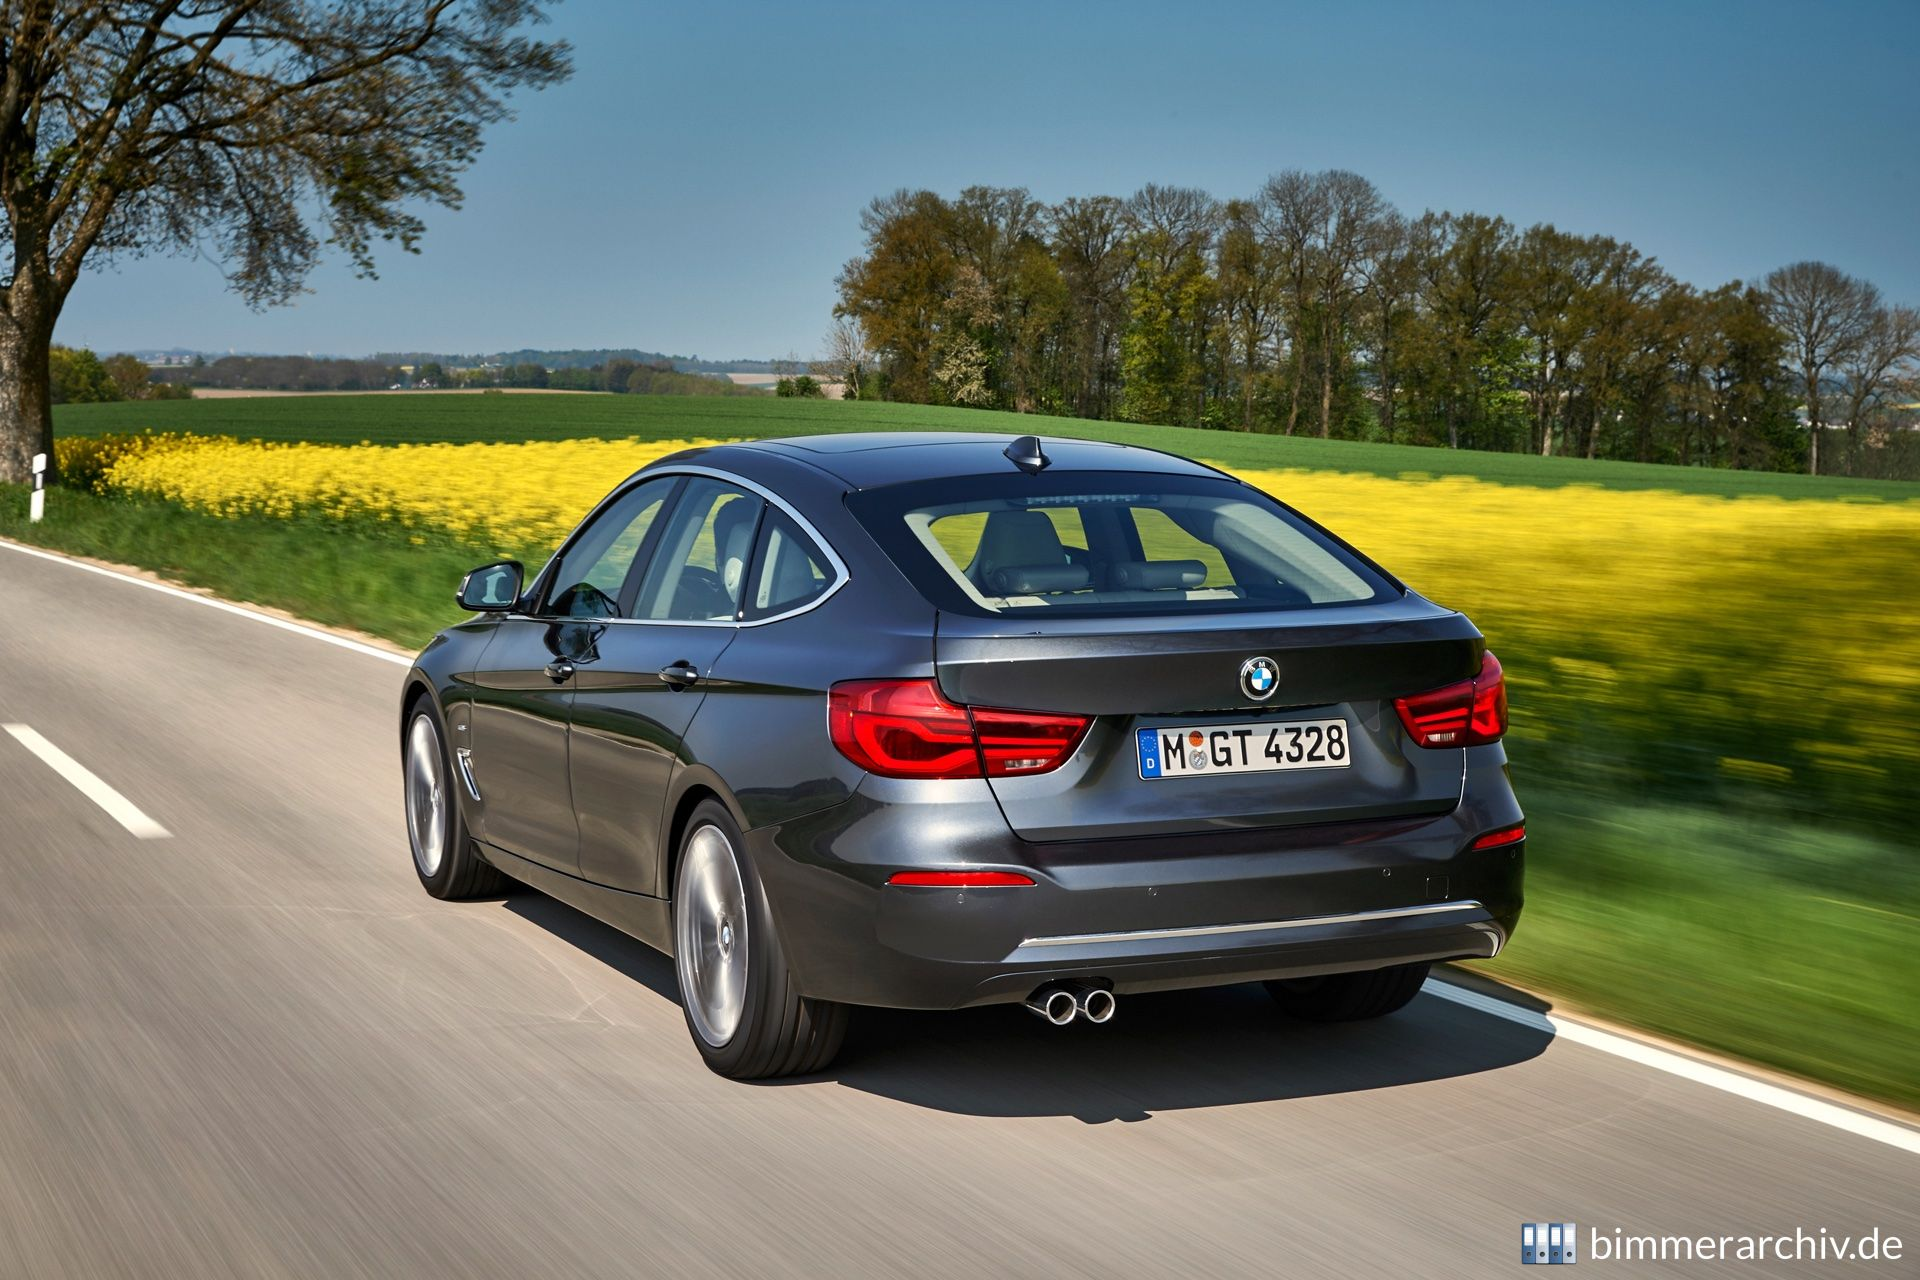 BMW 3 Series Gran Turismo, Luxury model